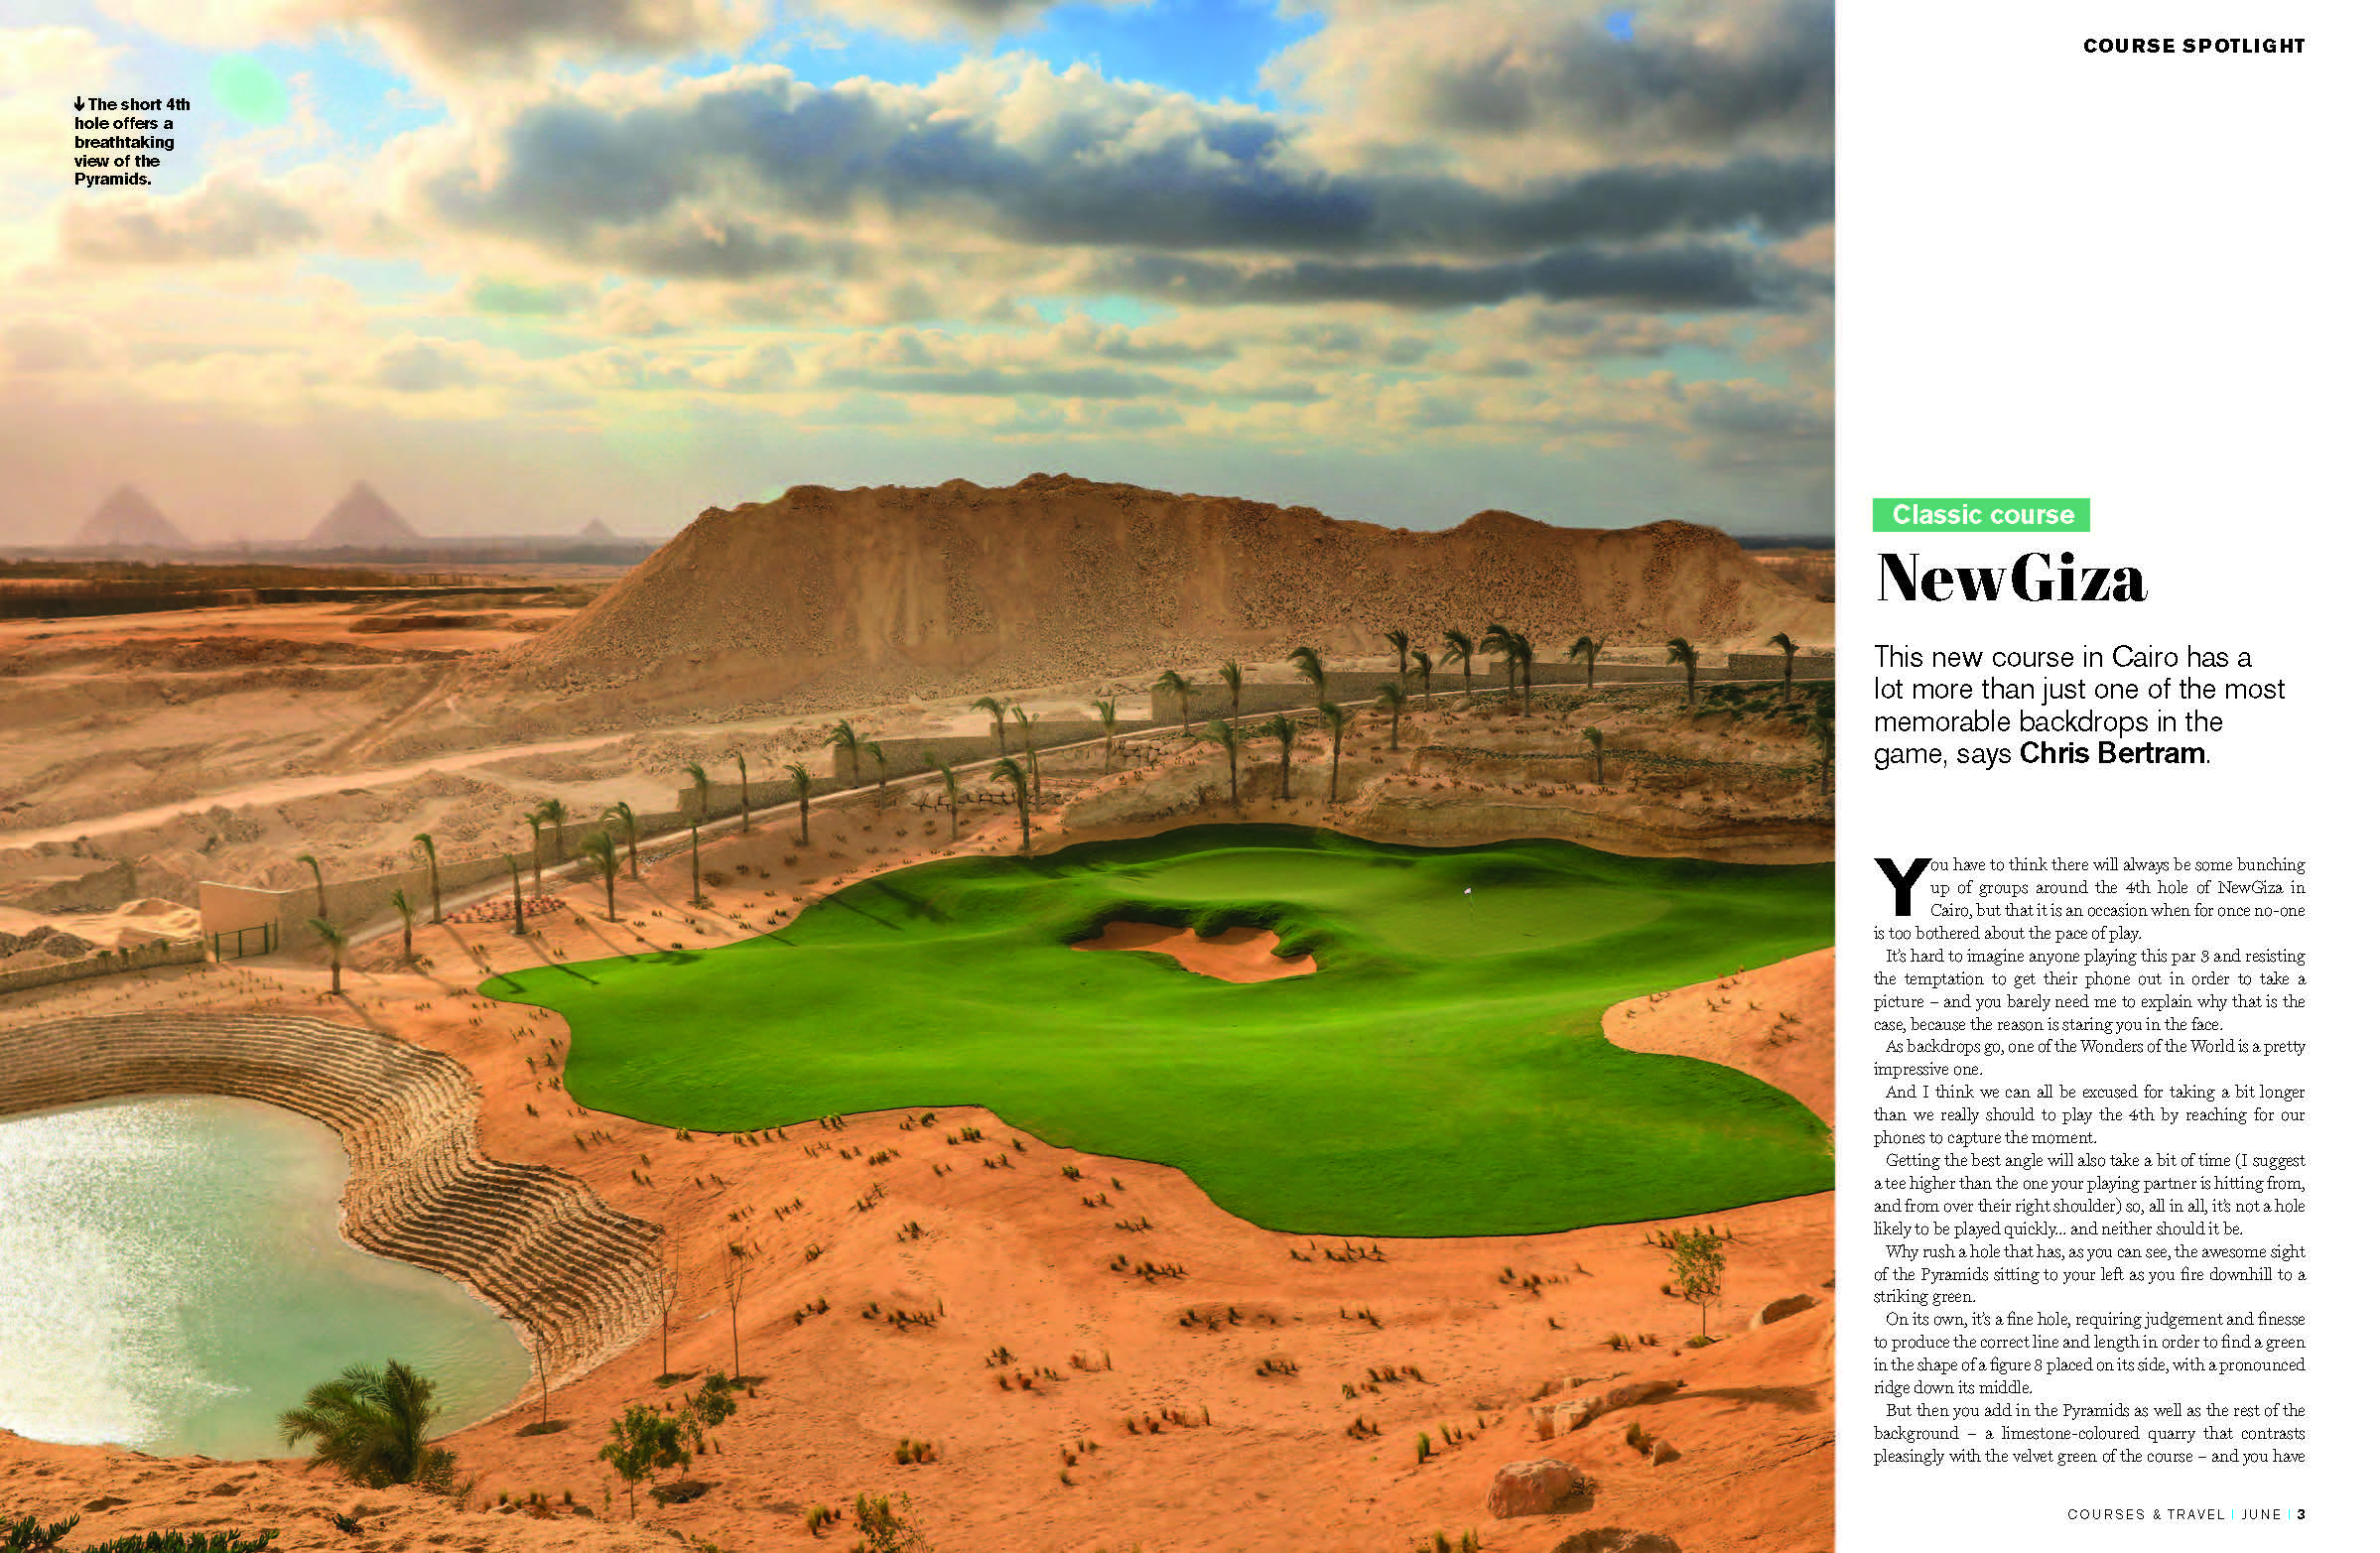 078-082 NCG Classic Course New Giza_Page_1.jpg